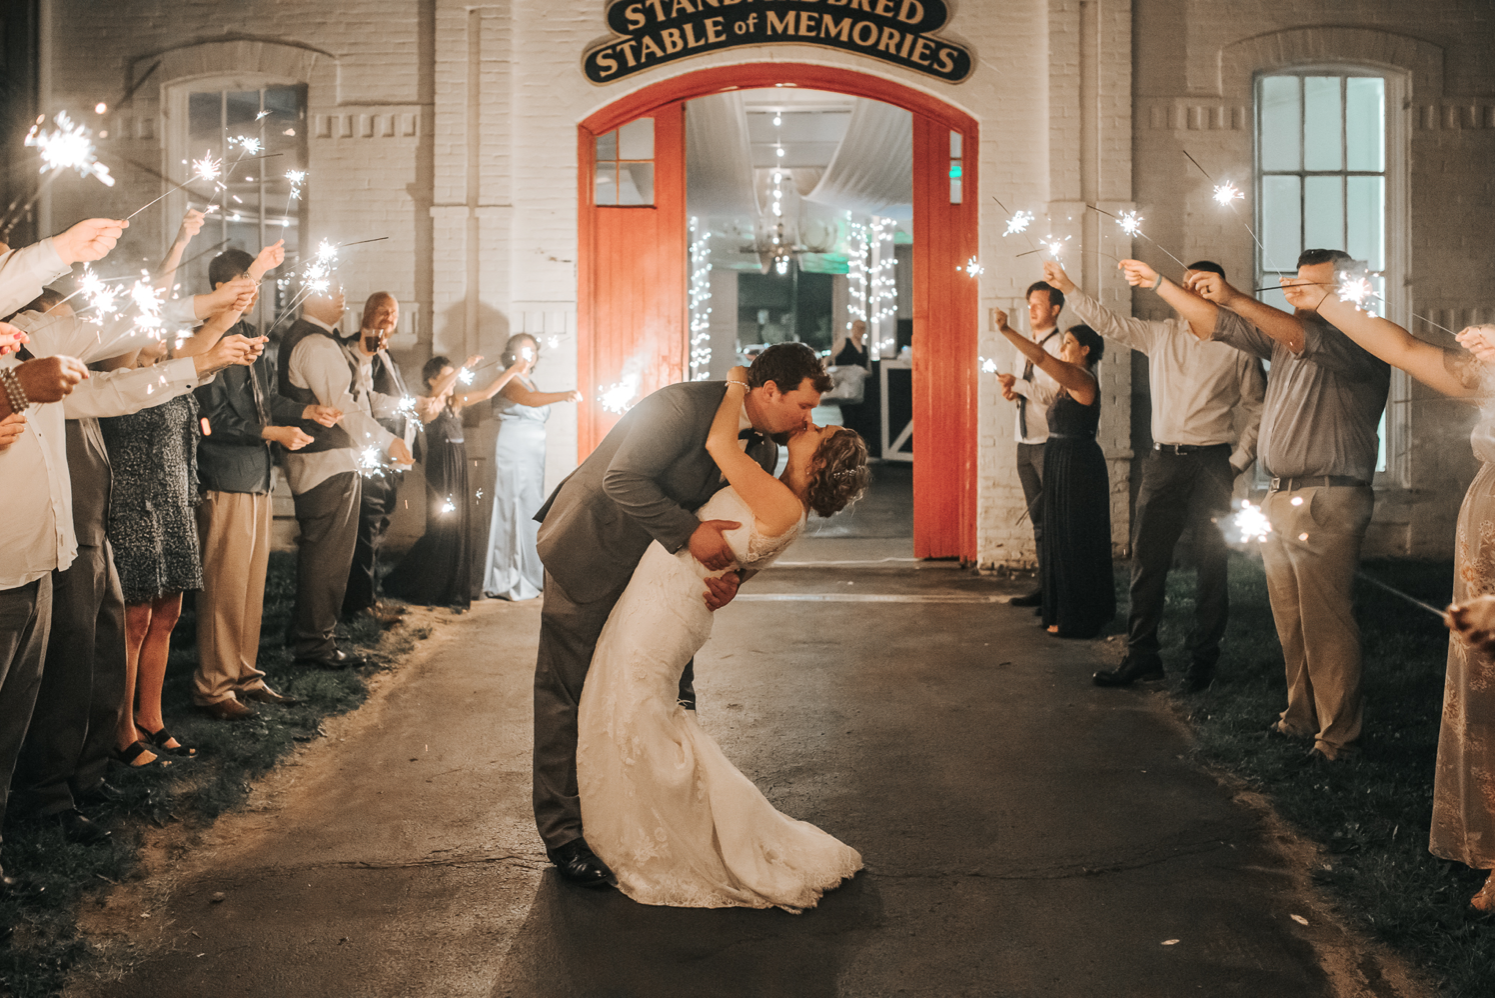 A wedding couple is kissing each other and their guests are holding sparklers at one of the wedding venues in Kentucky.